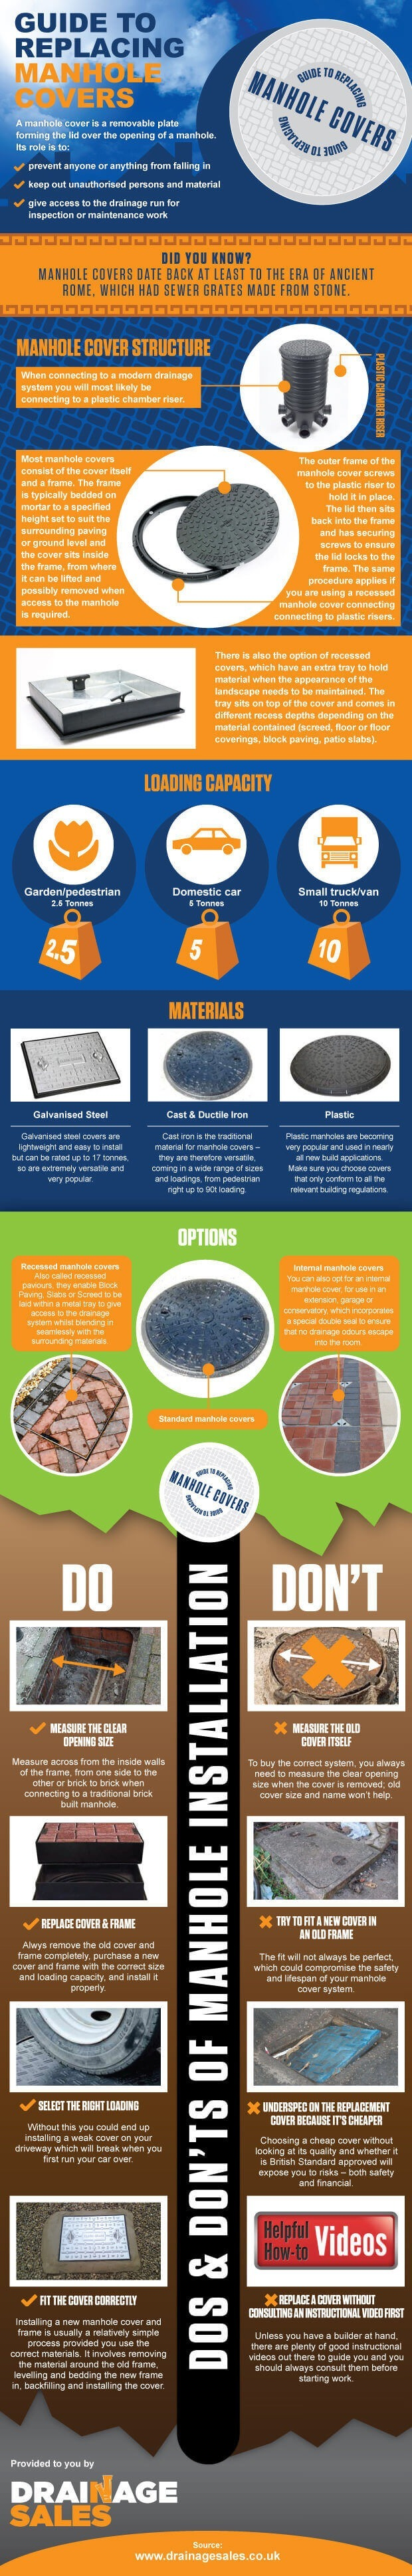 Manhole Covers Infographic